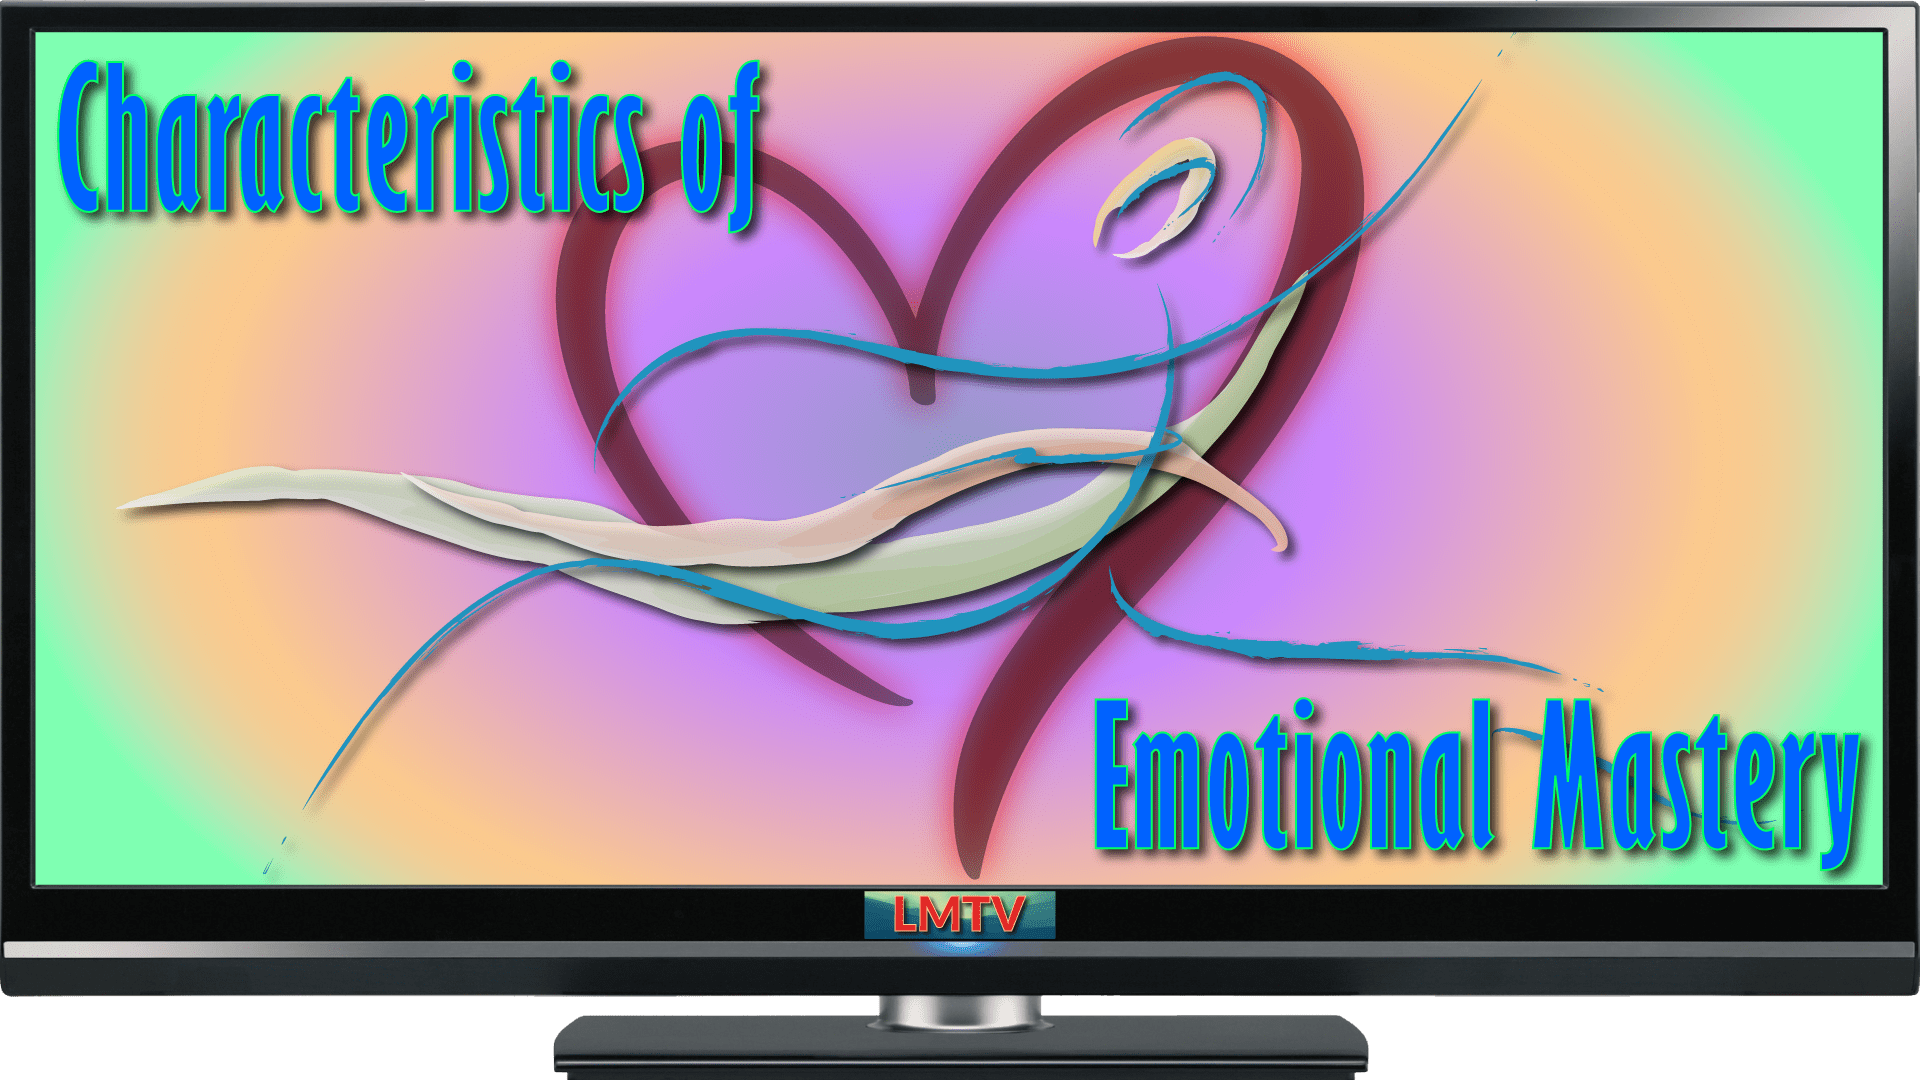 Characteristics of Emotional Mastery